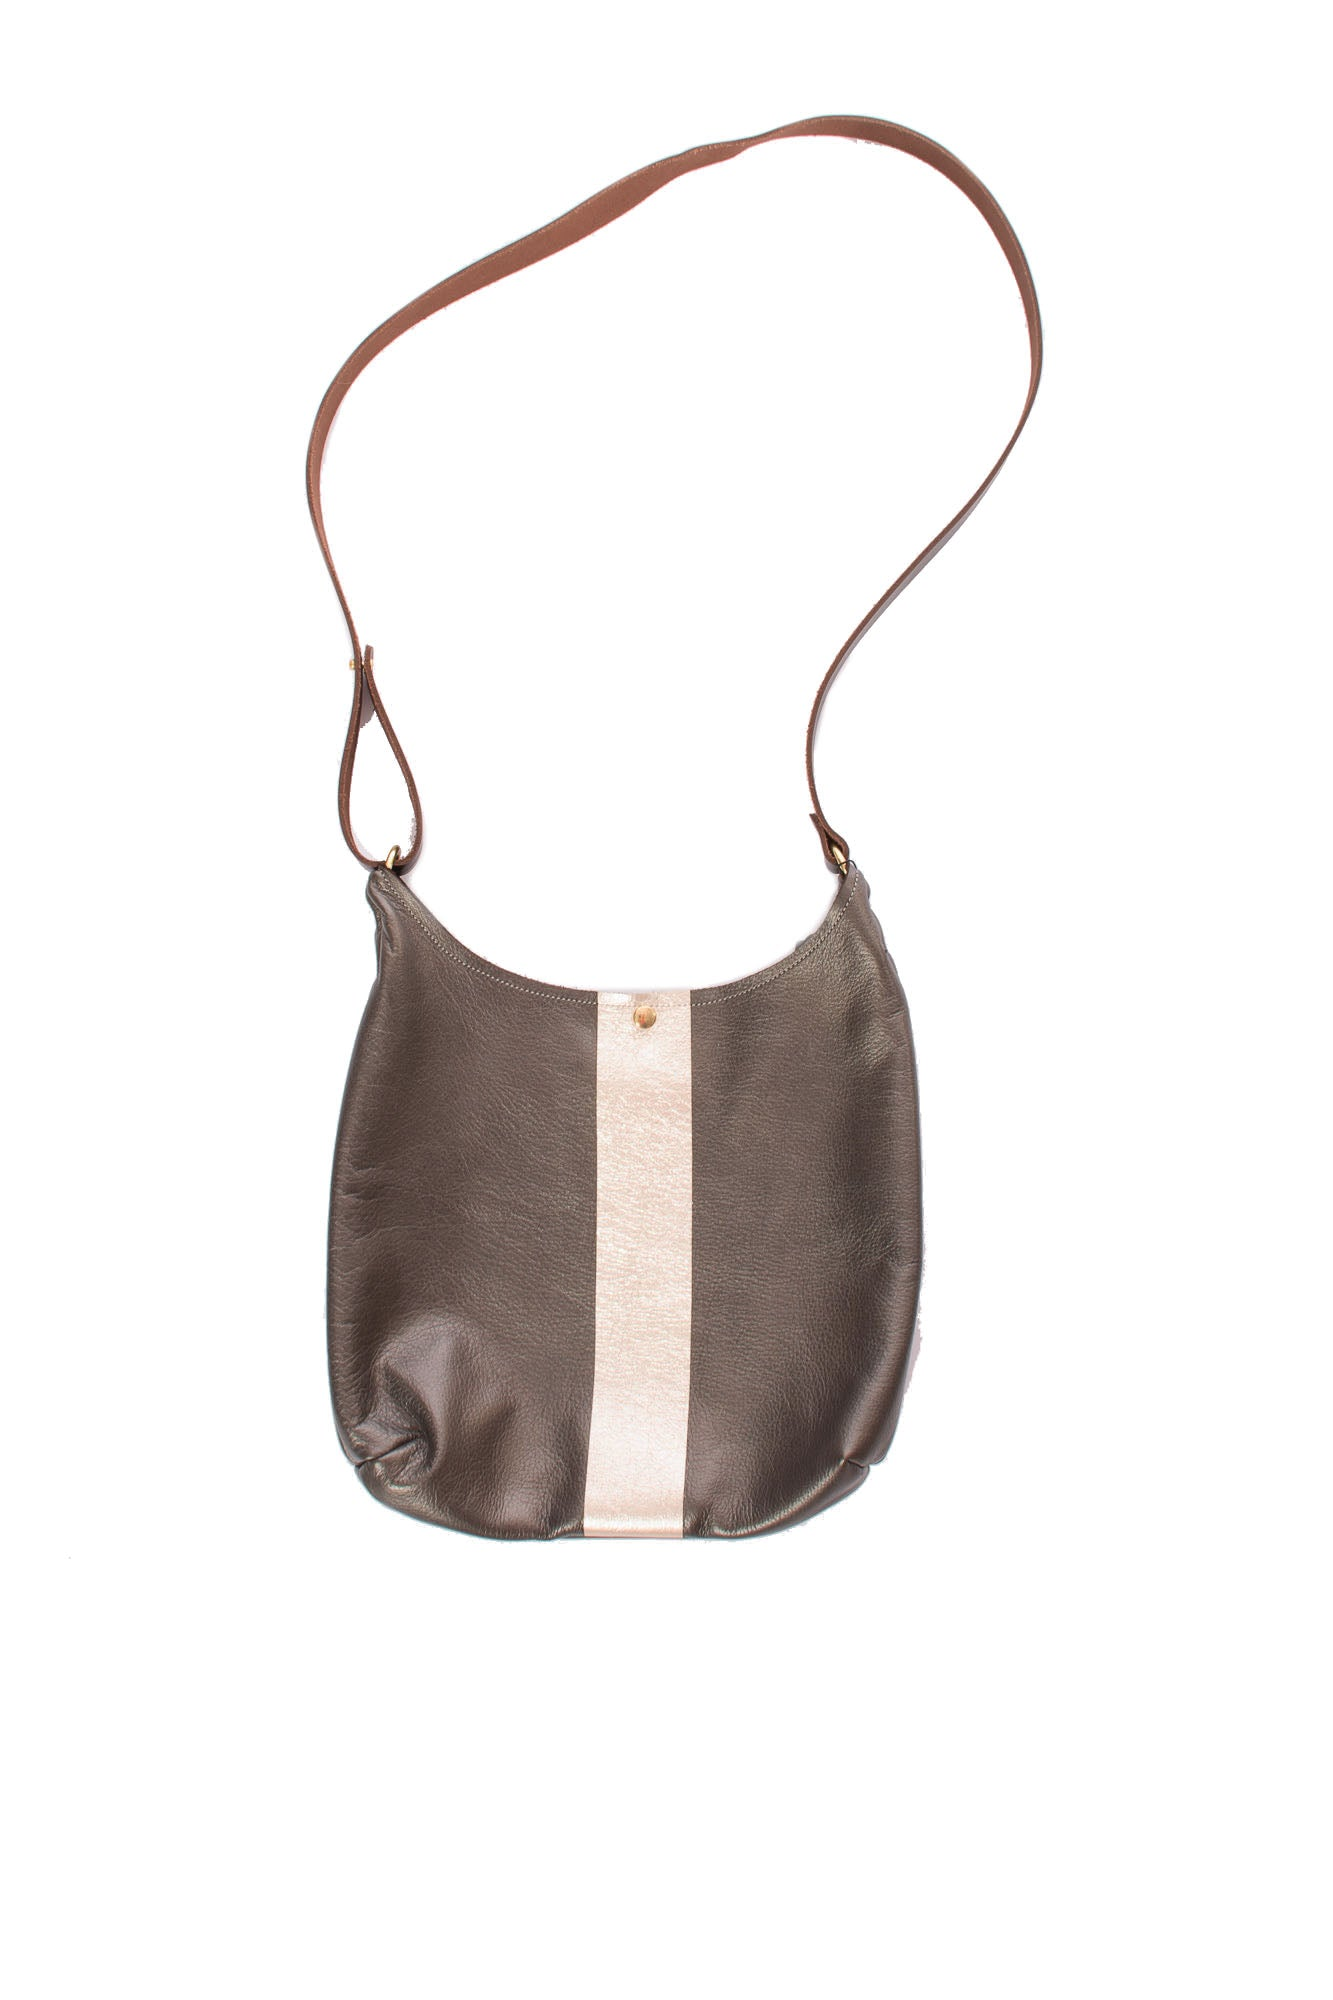 Zina Kao - Russell Cross Body Bag W/Snaps (russell, Pyrite)